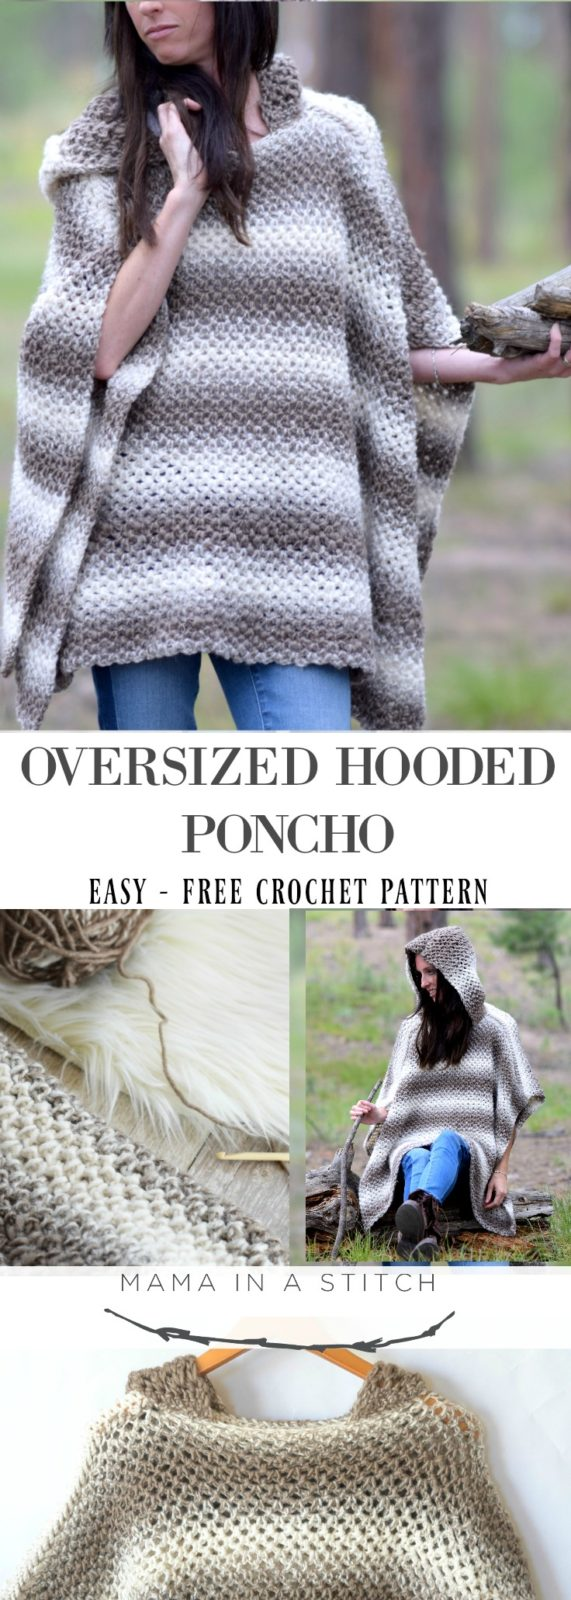 Driftwood Oversized Crochet Hooded Poncho Pattern Mama In A Stitch